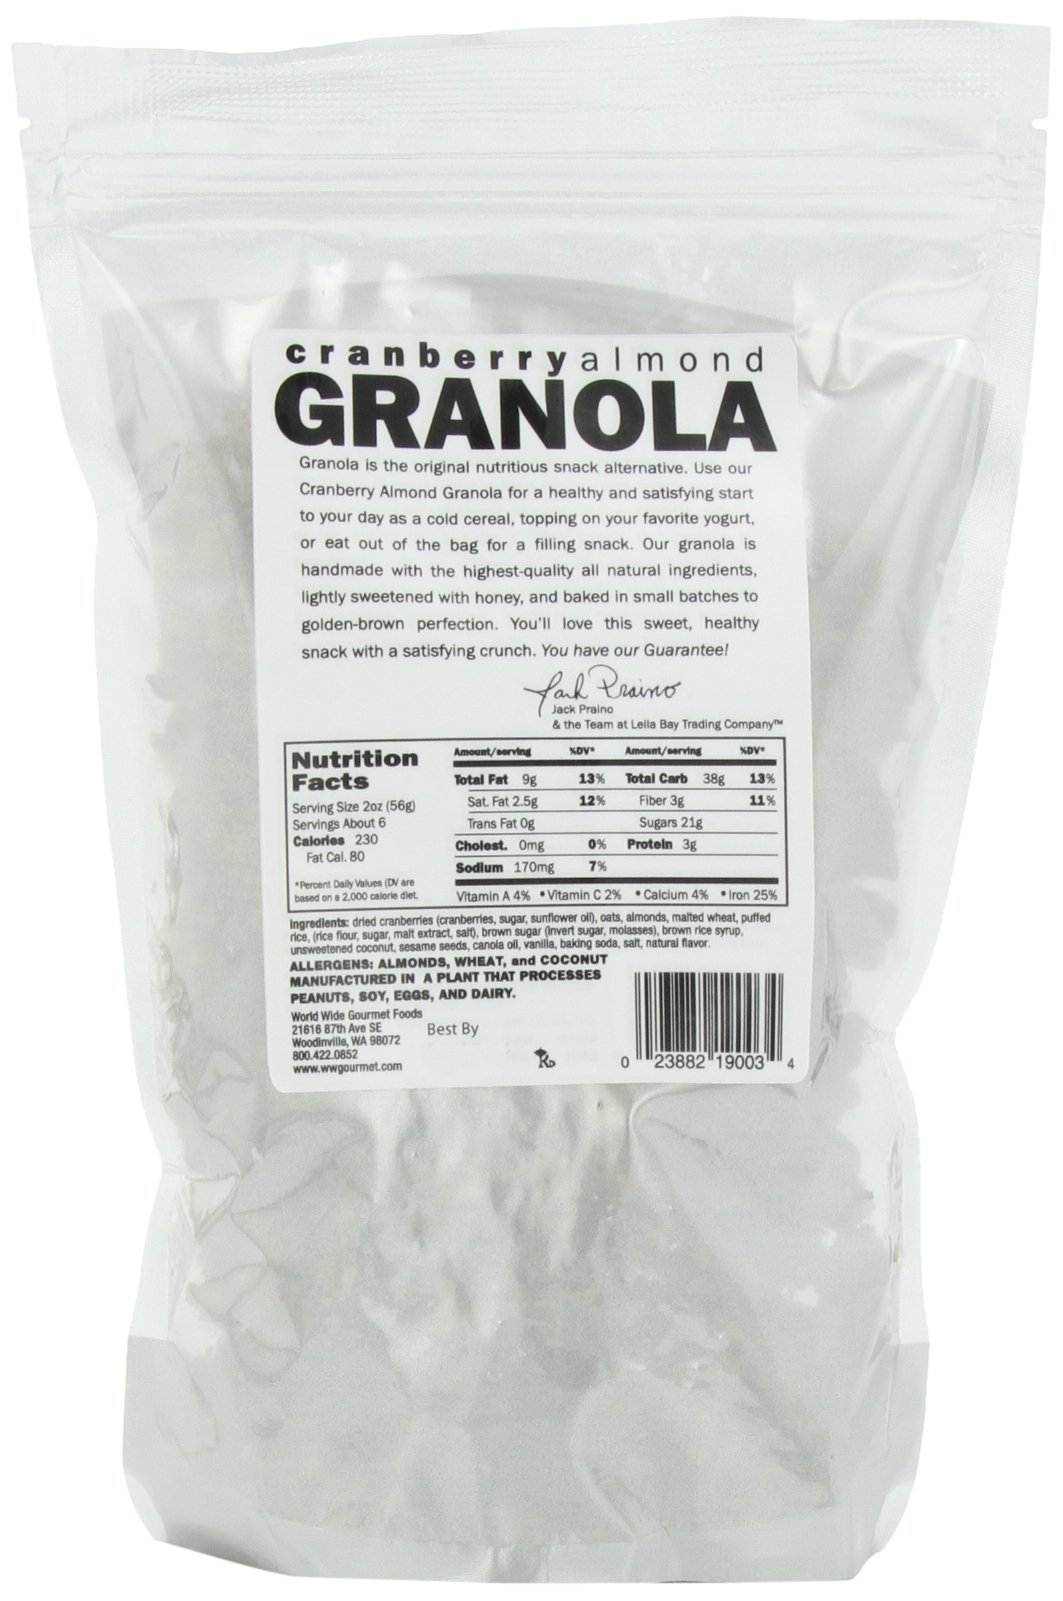 Leila Bay Trading Company Cranberry Almond Granola, 12-Ounce Pouches (Pack of 3)